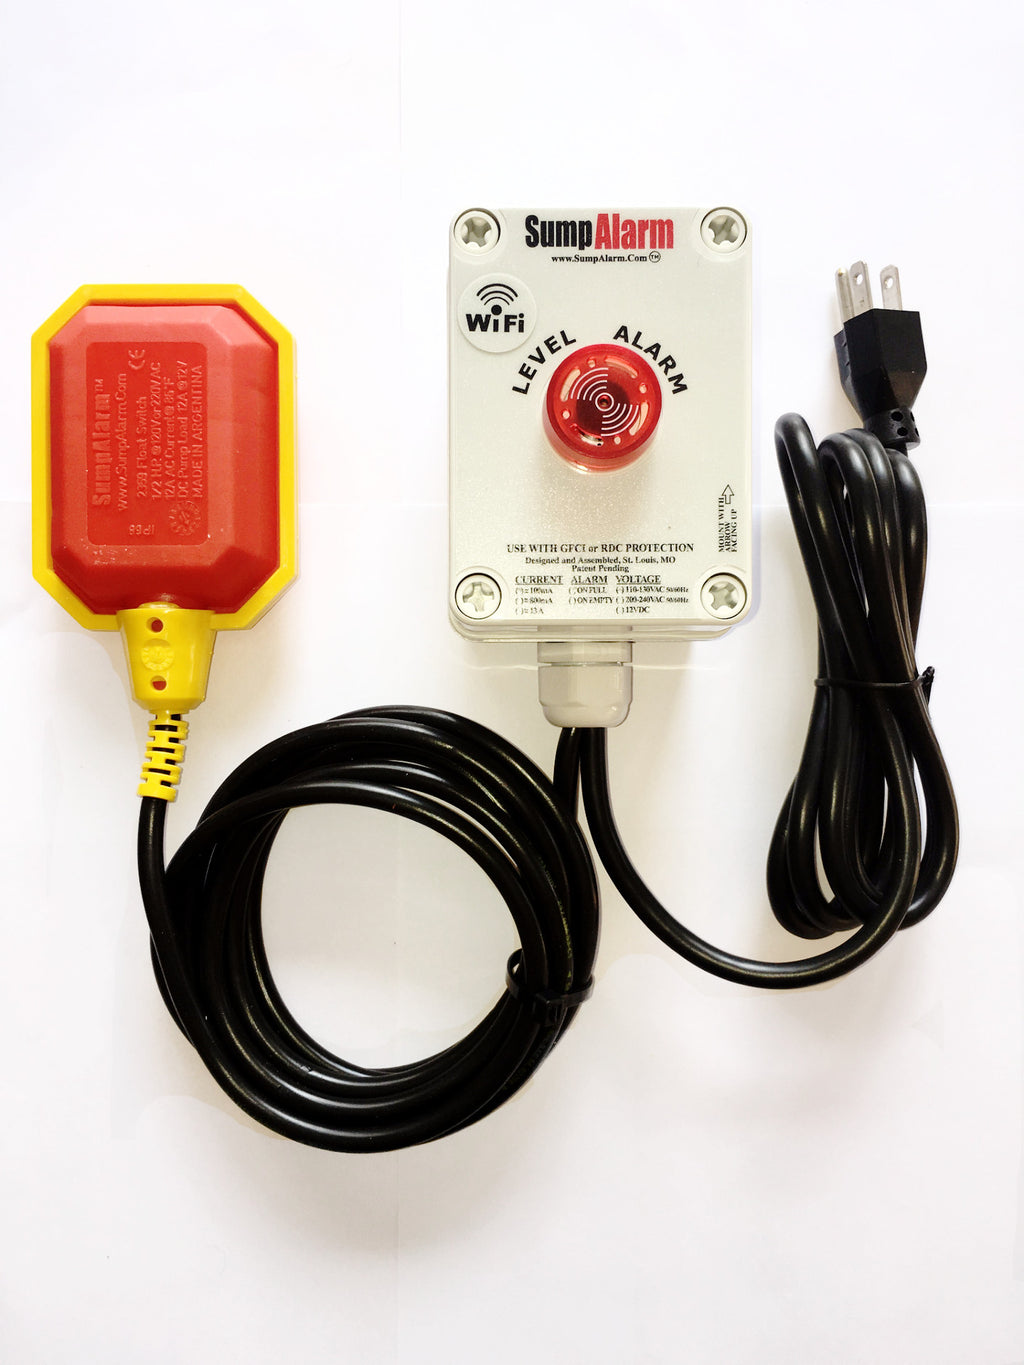 Wifi Wireless In//Outdoor Sump Pump//High Water Alarm Contacts you by voice e-mail and text before you have a problem.